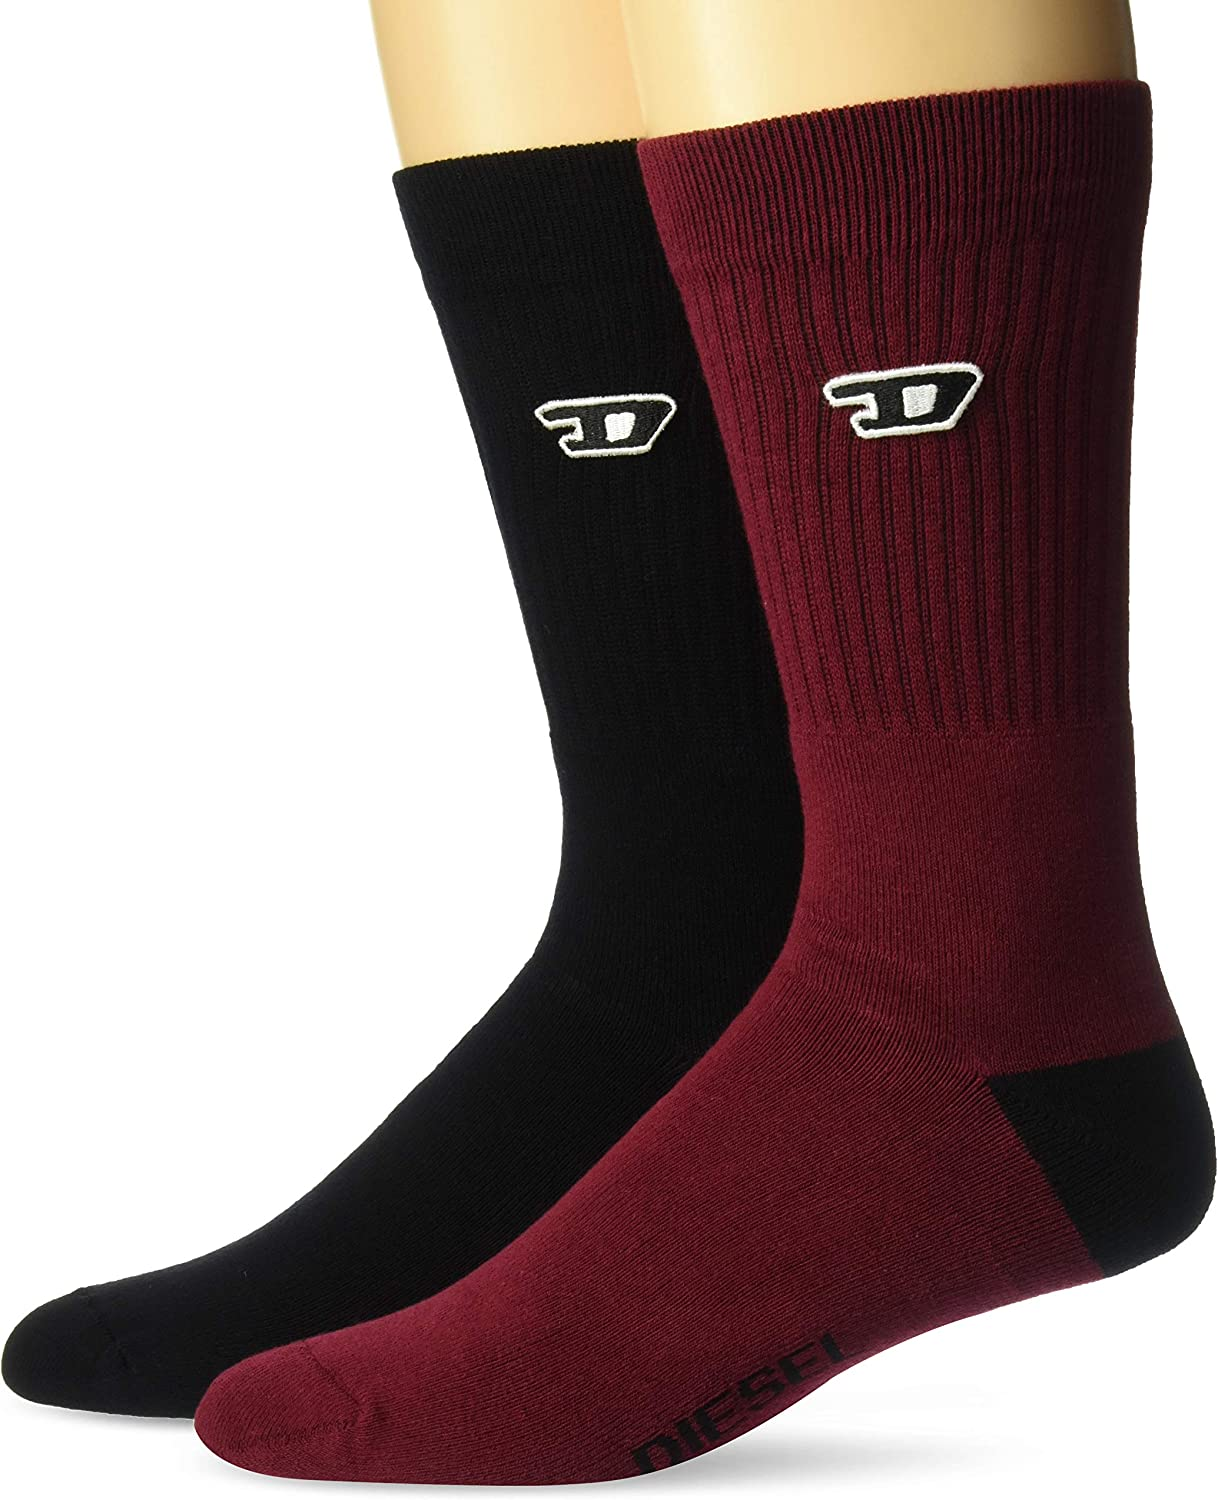 Diesel Men's RAY-TWOPACK Socks 2pack